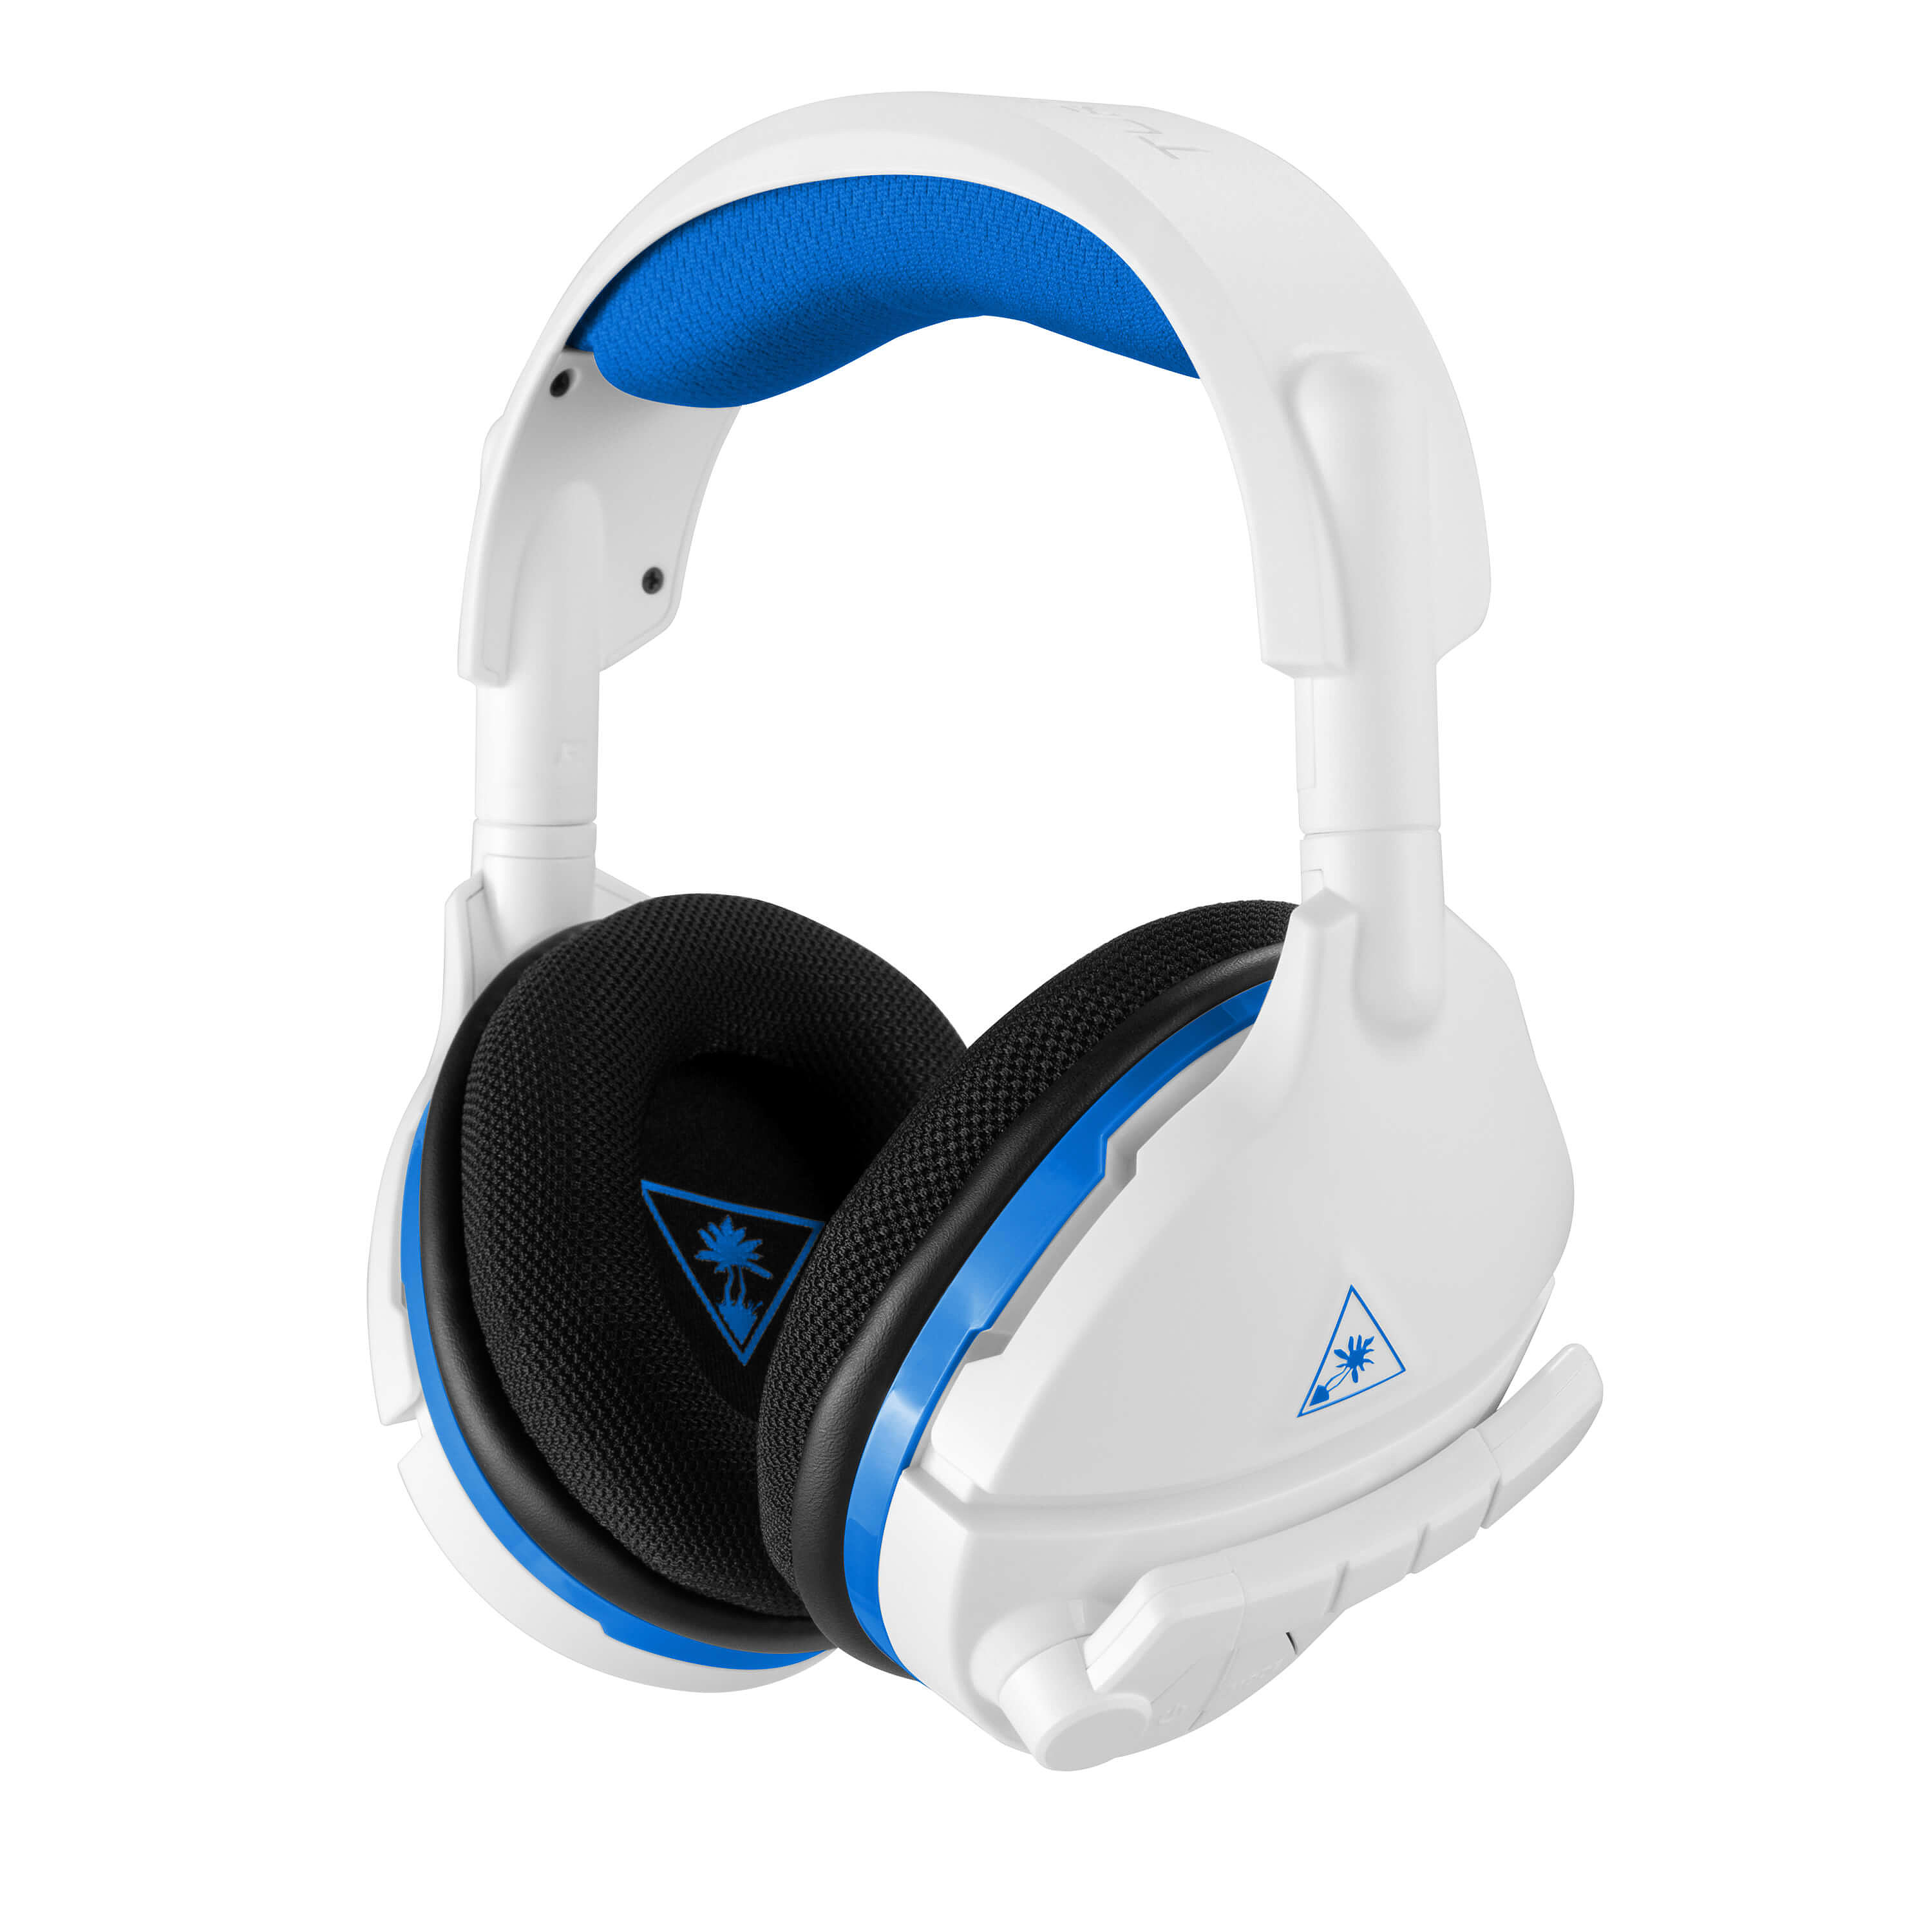 394d6eeffa6 Buy Turtle Beach Stealth 600 White Wireless Gaming Headset for PS4 | GAME